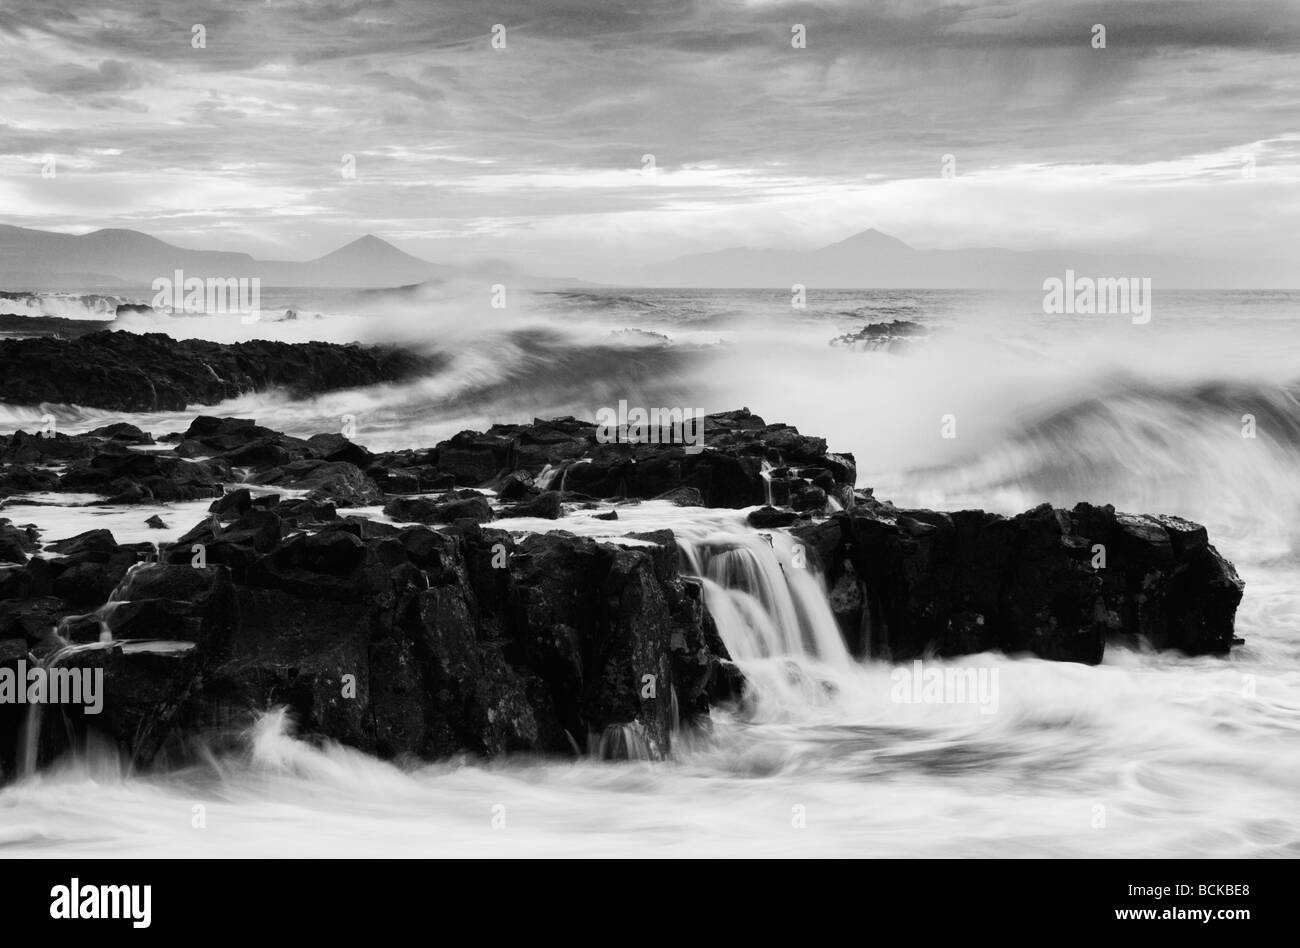 Waves breaking over rocks on north coast of Gran Canaria in The Canary Islands. - Stock Image